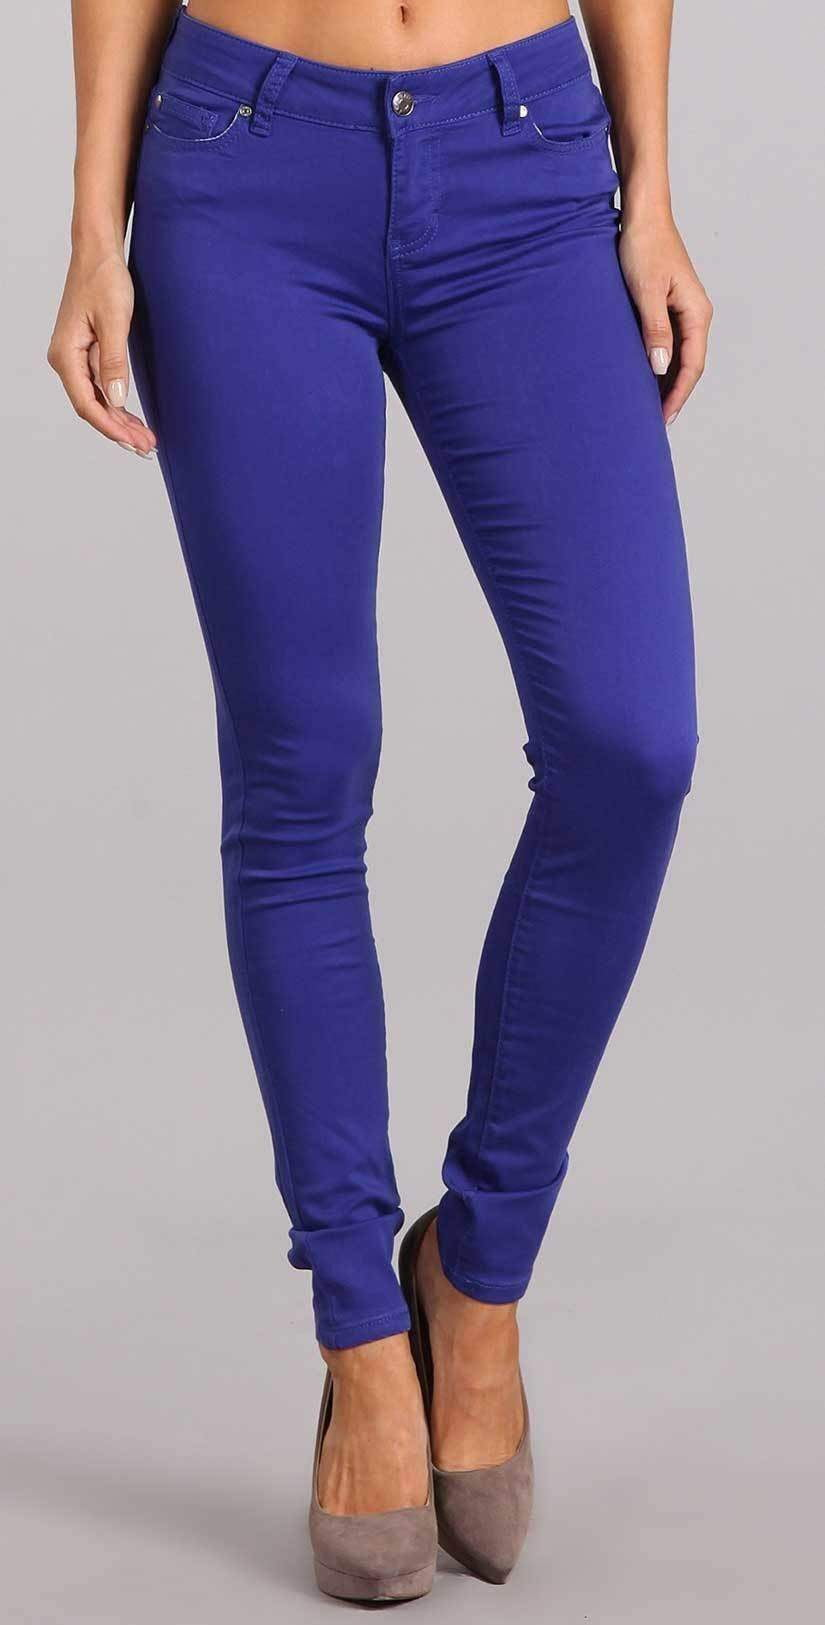 Celebrity Pink Skinny Mid Rise Pant In Spectrum Blue CJ21038Z35: